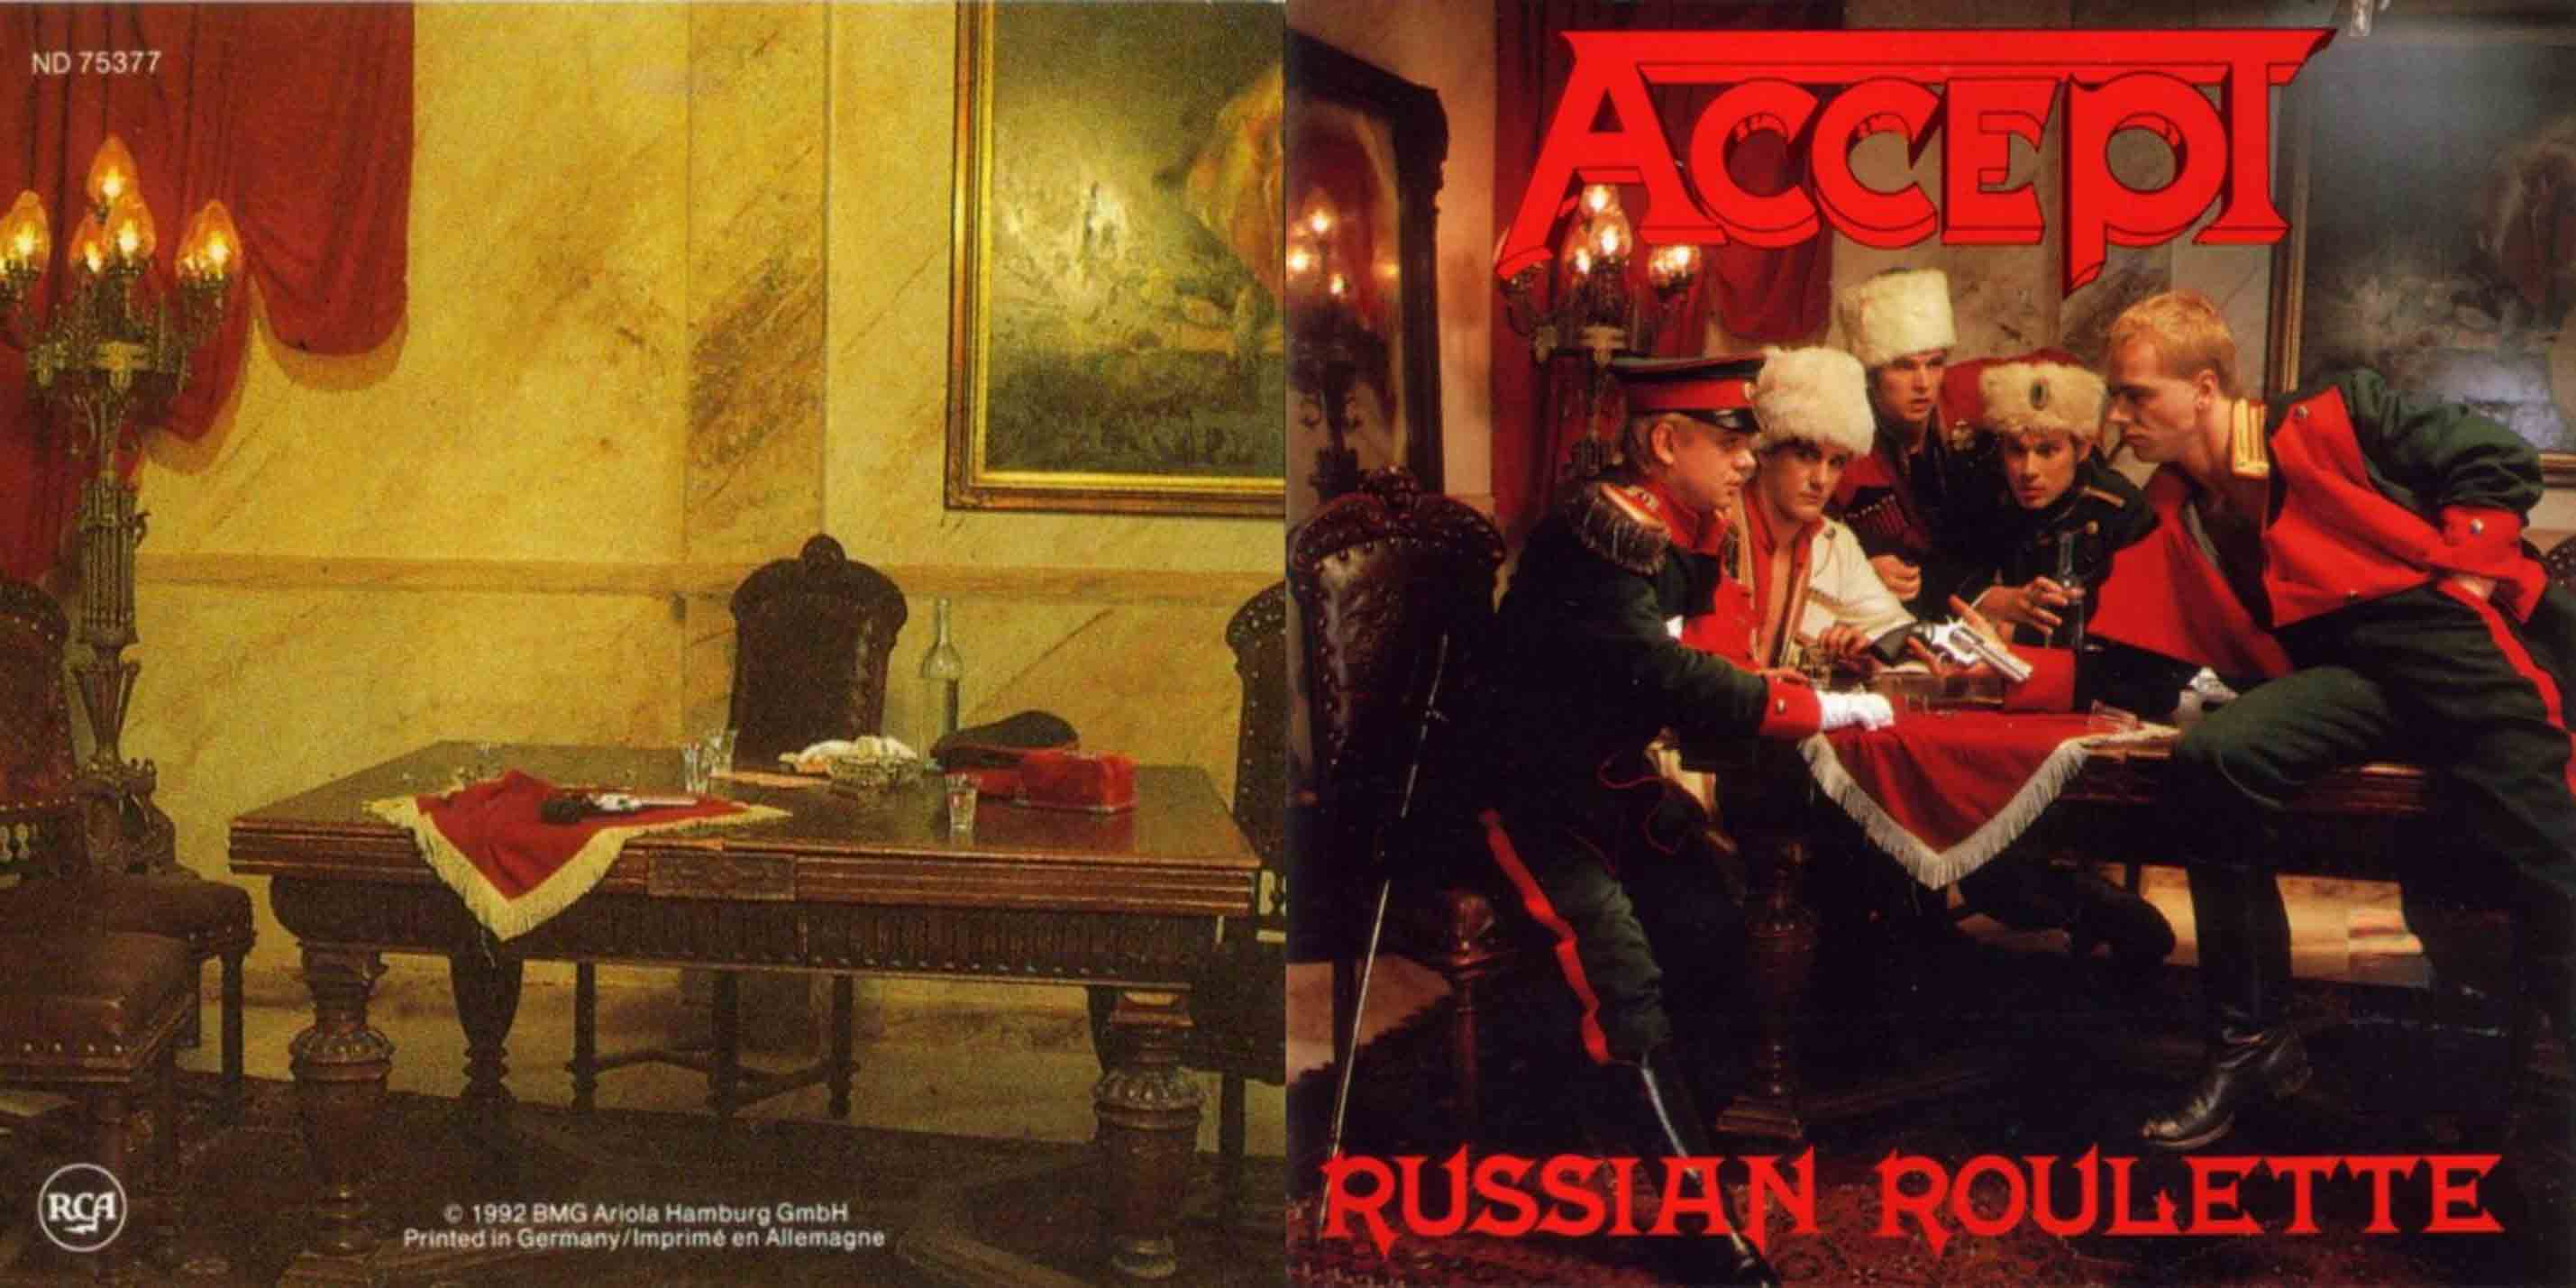 Accept russian roulette cover american roulette forum